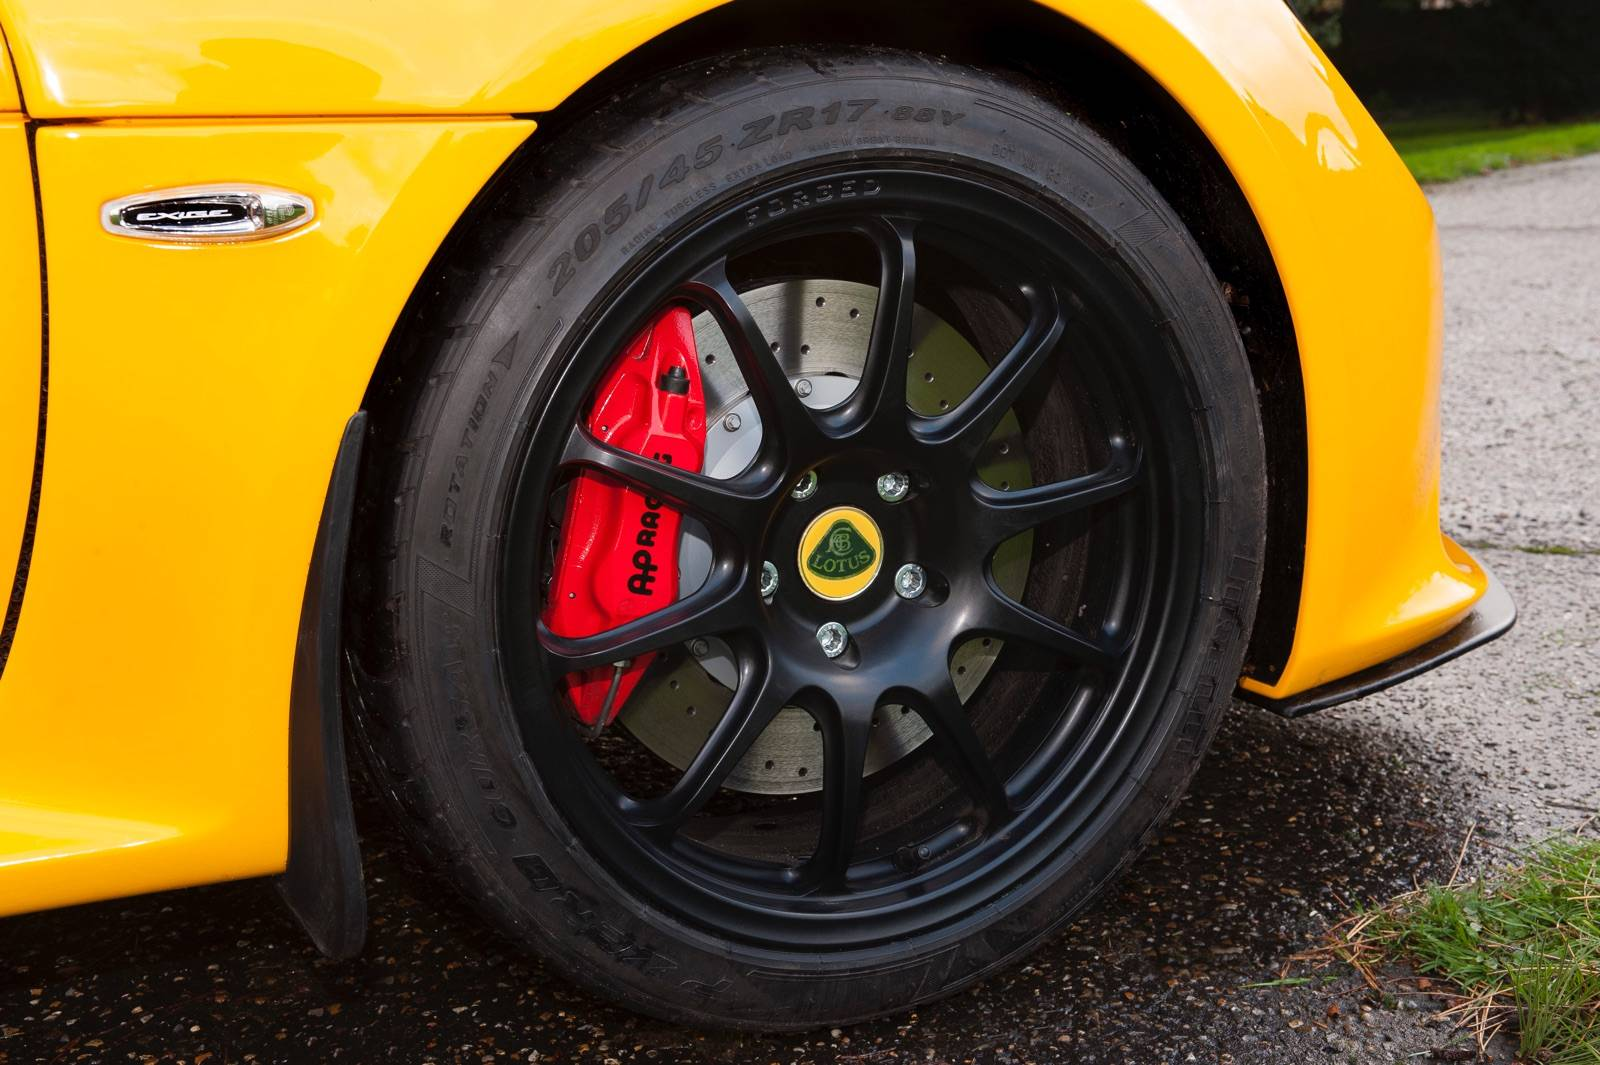 Third Generation Lotus Exige - This Is Lotus Exige Sport 350 5